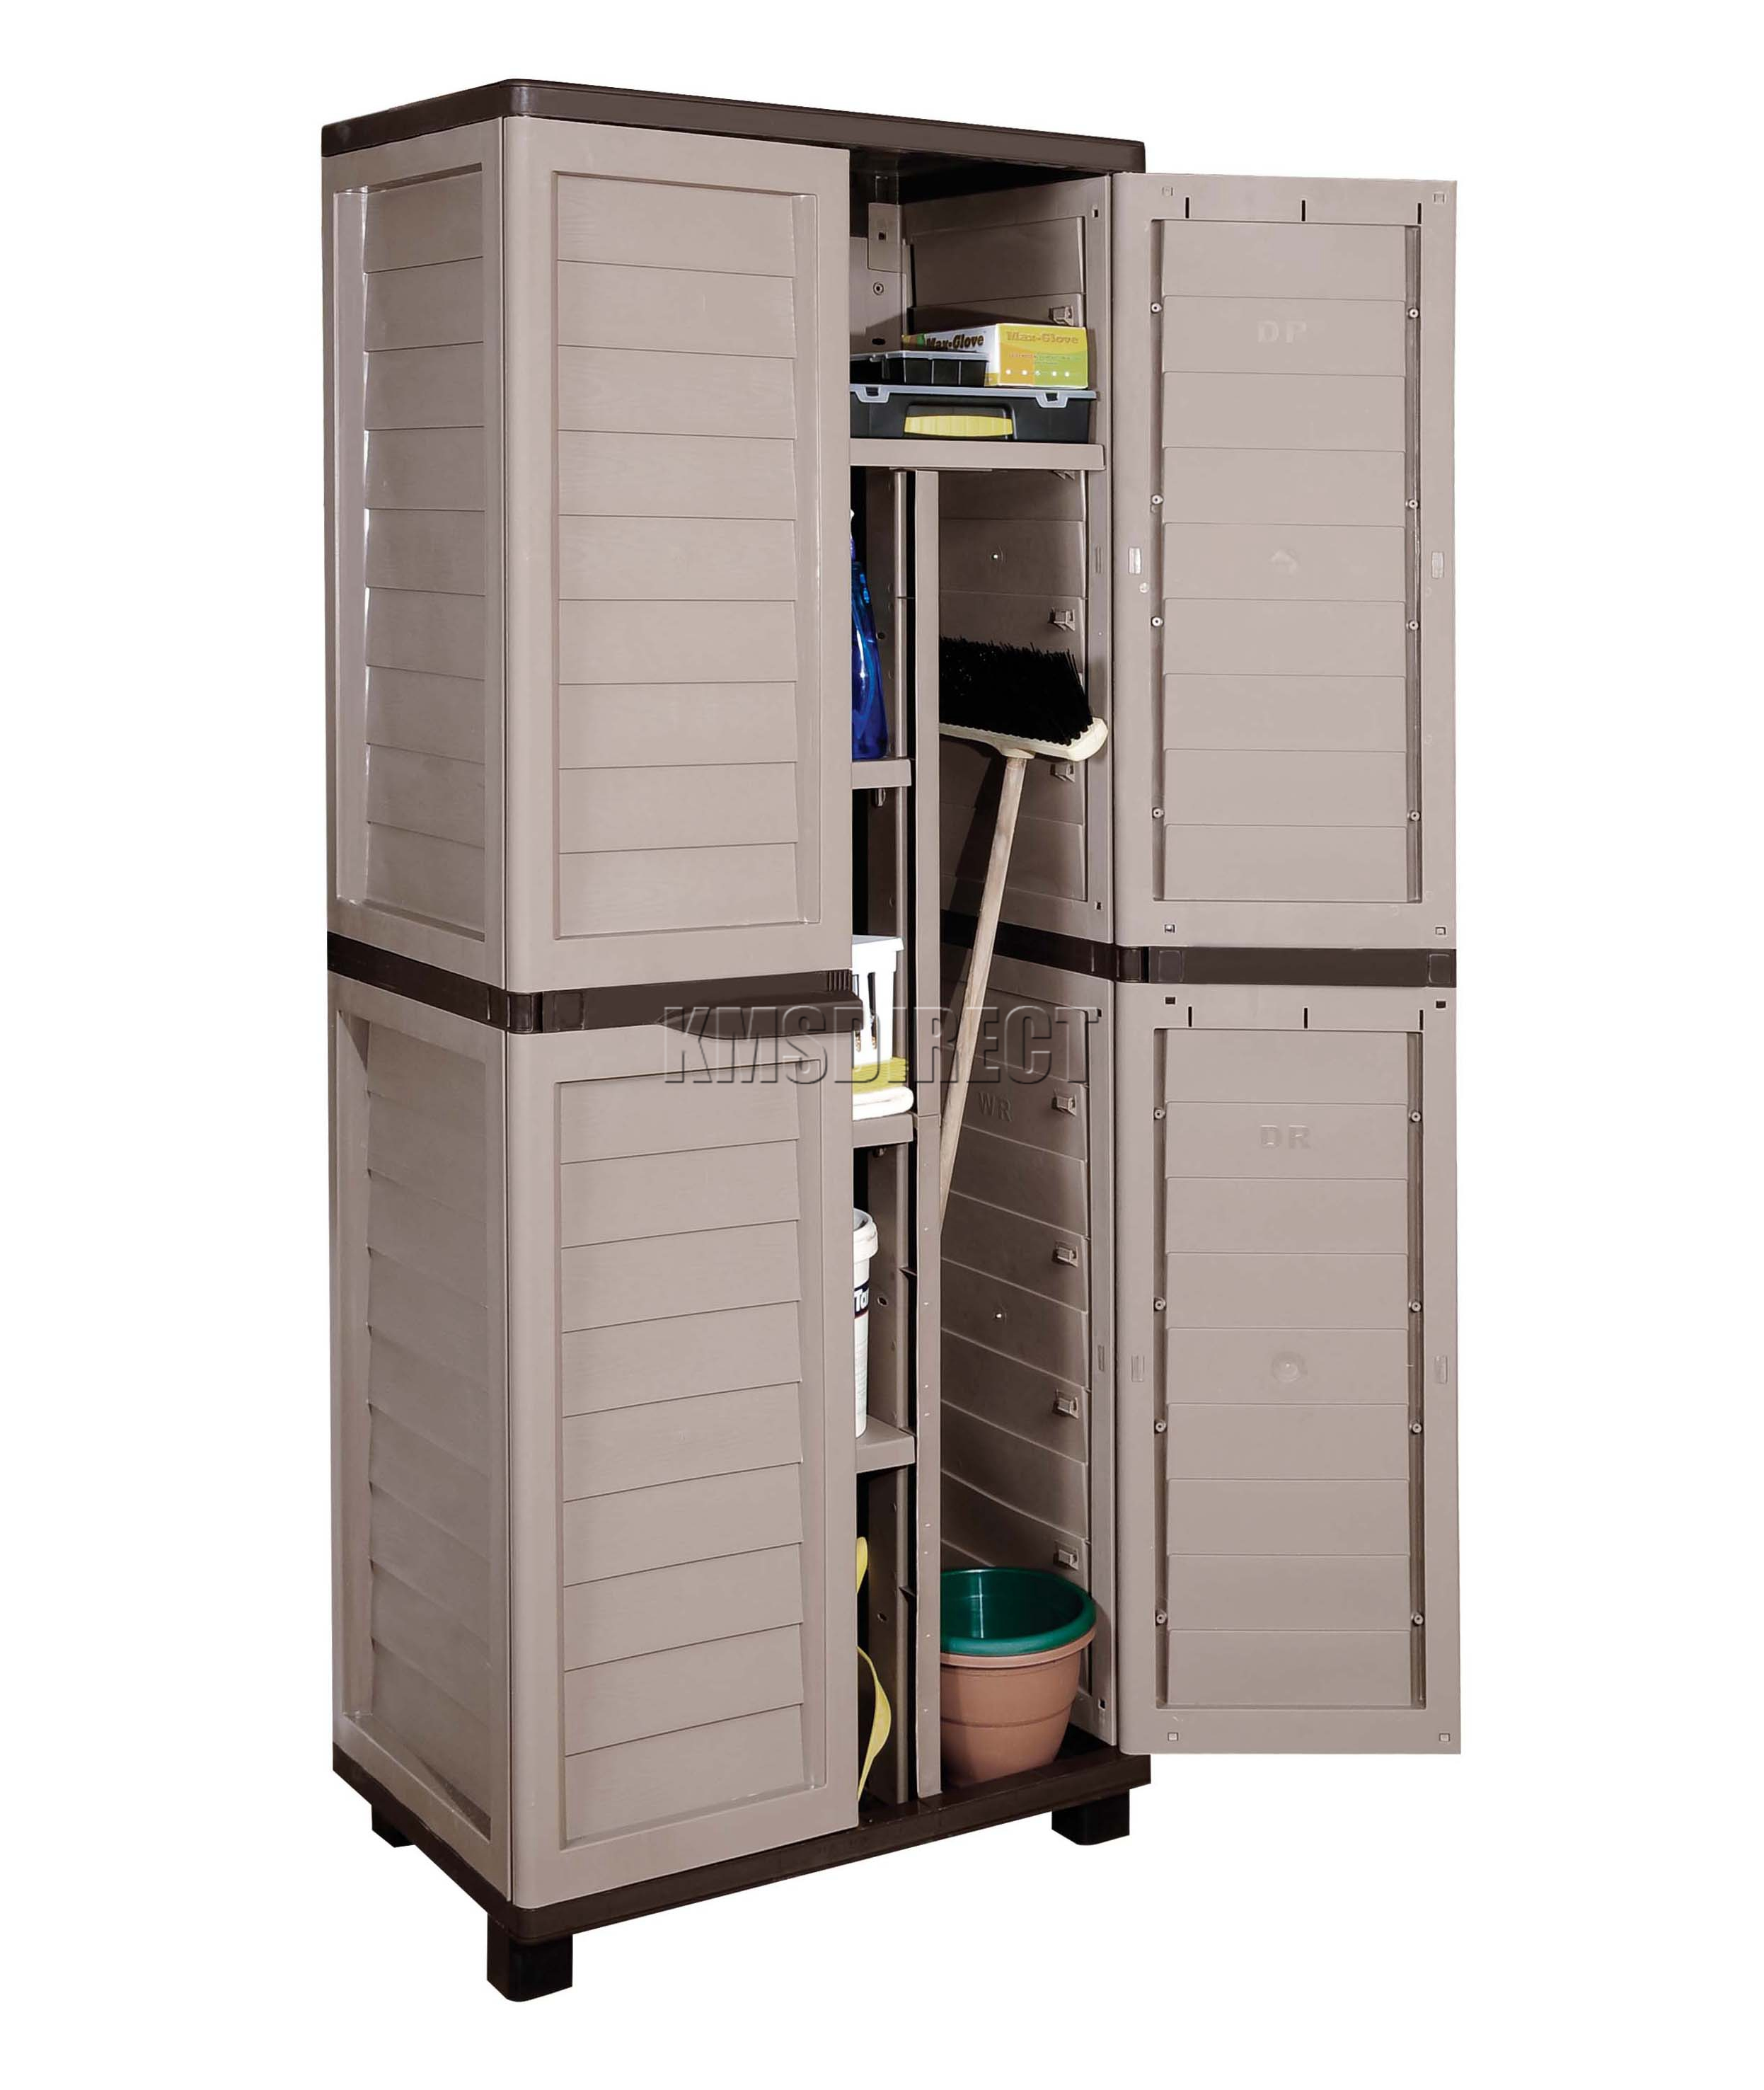 Tips For Buying Garage Utility Cabinets: Starplast Outdoor Plastic Garden Utility Cabinet With Partition Storage Garage